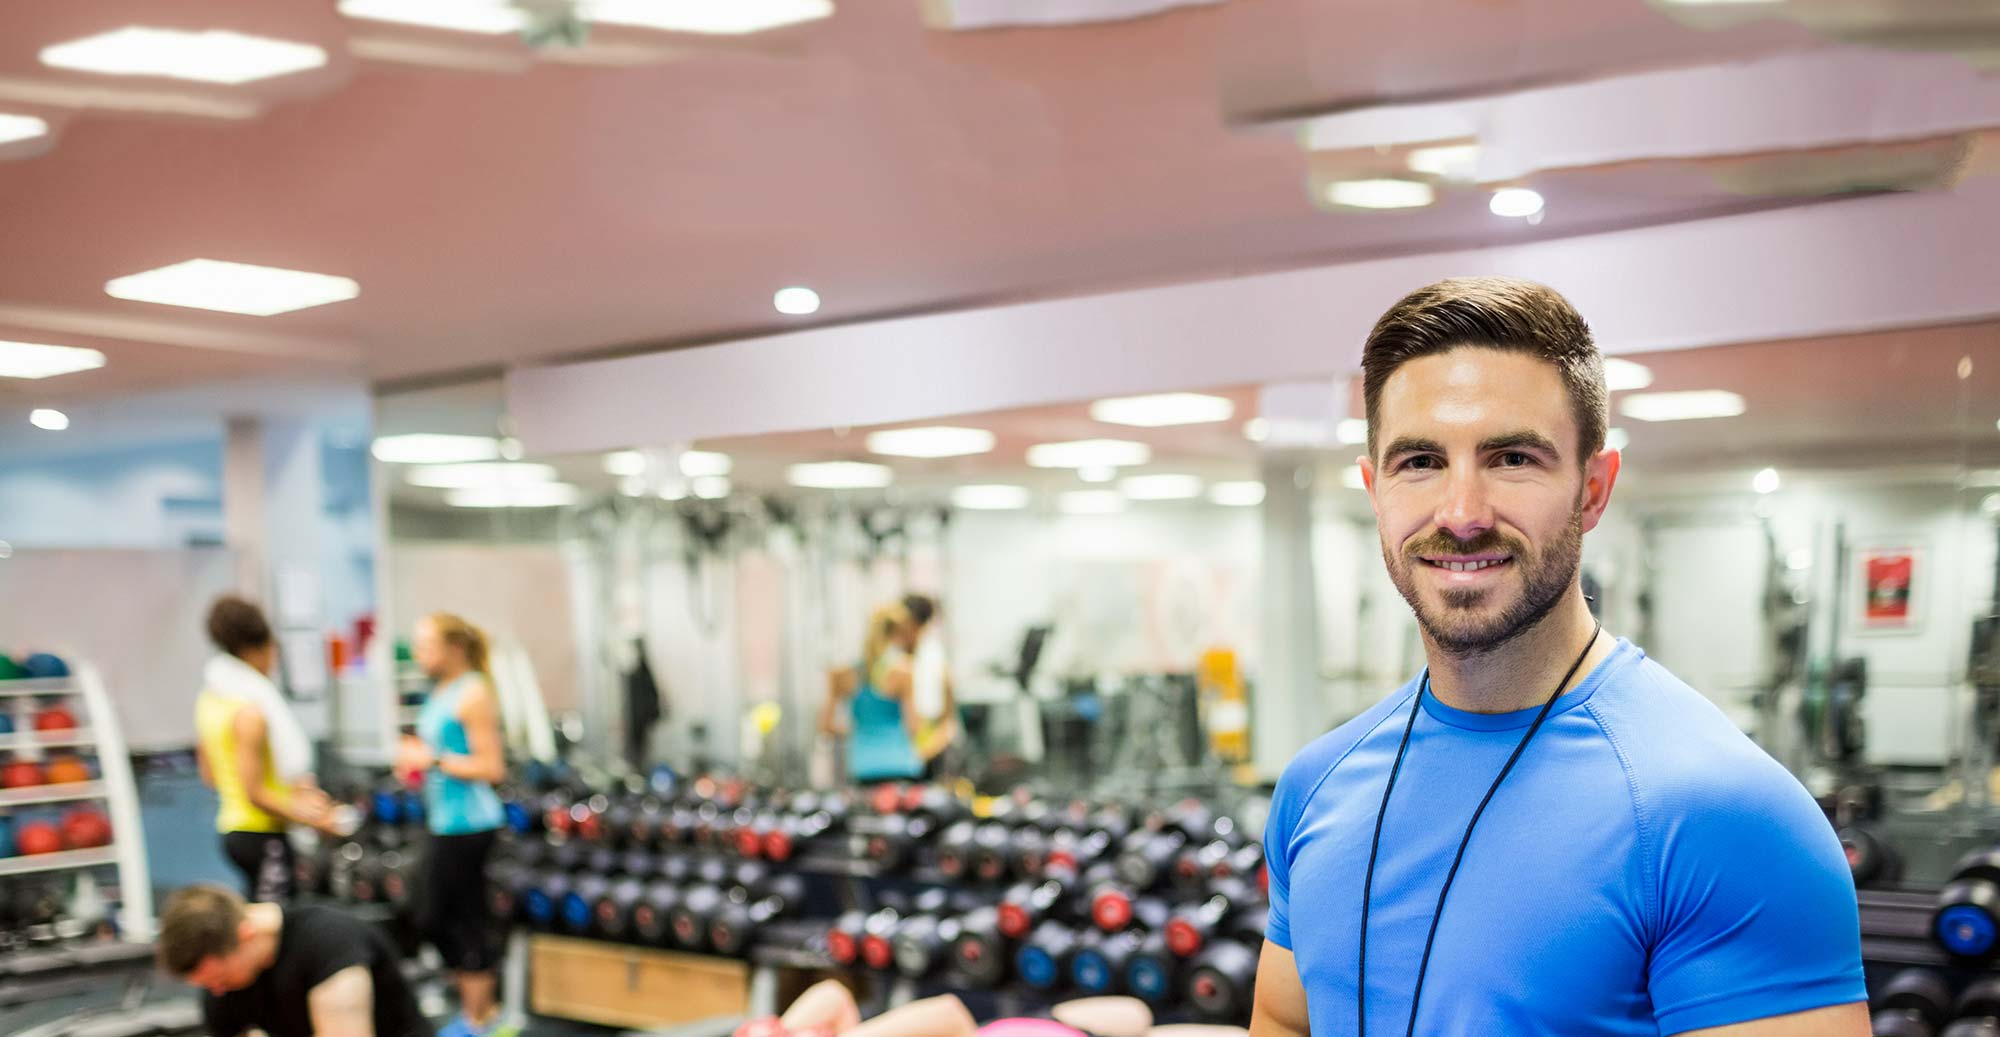 Finding it hard to get gym insurance? We can provide immediate cover. Click here to find out more.